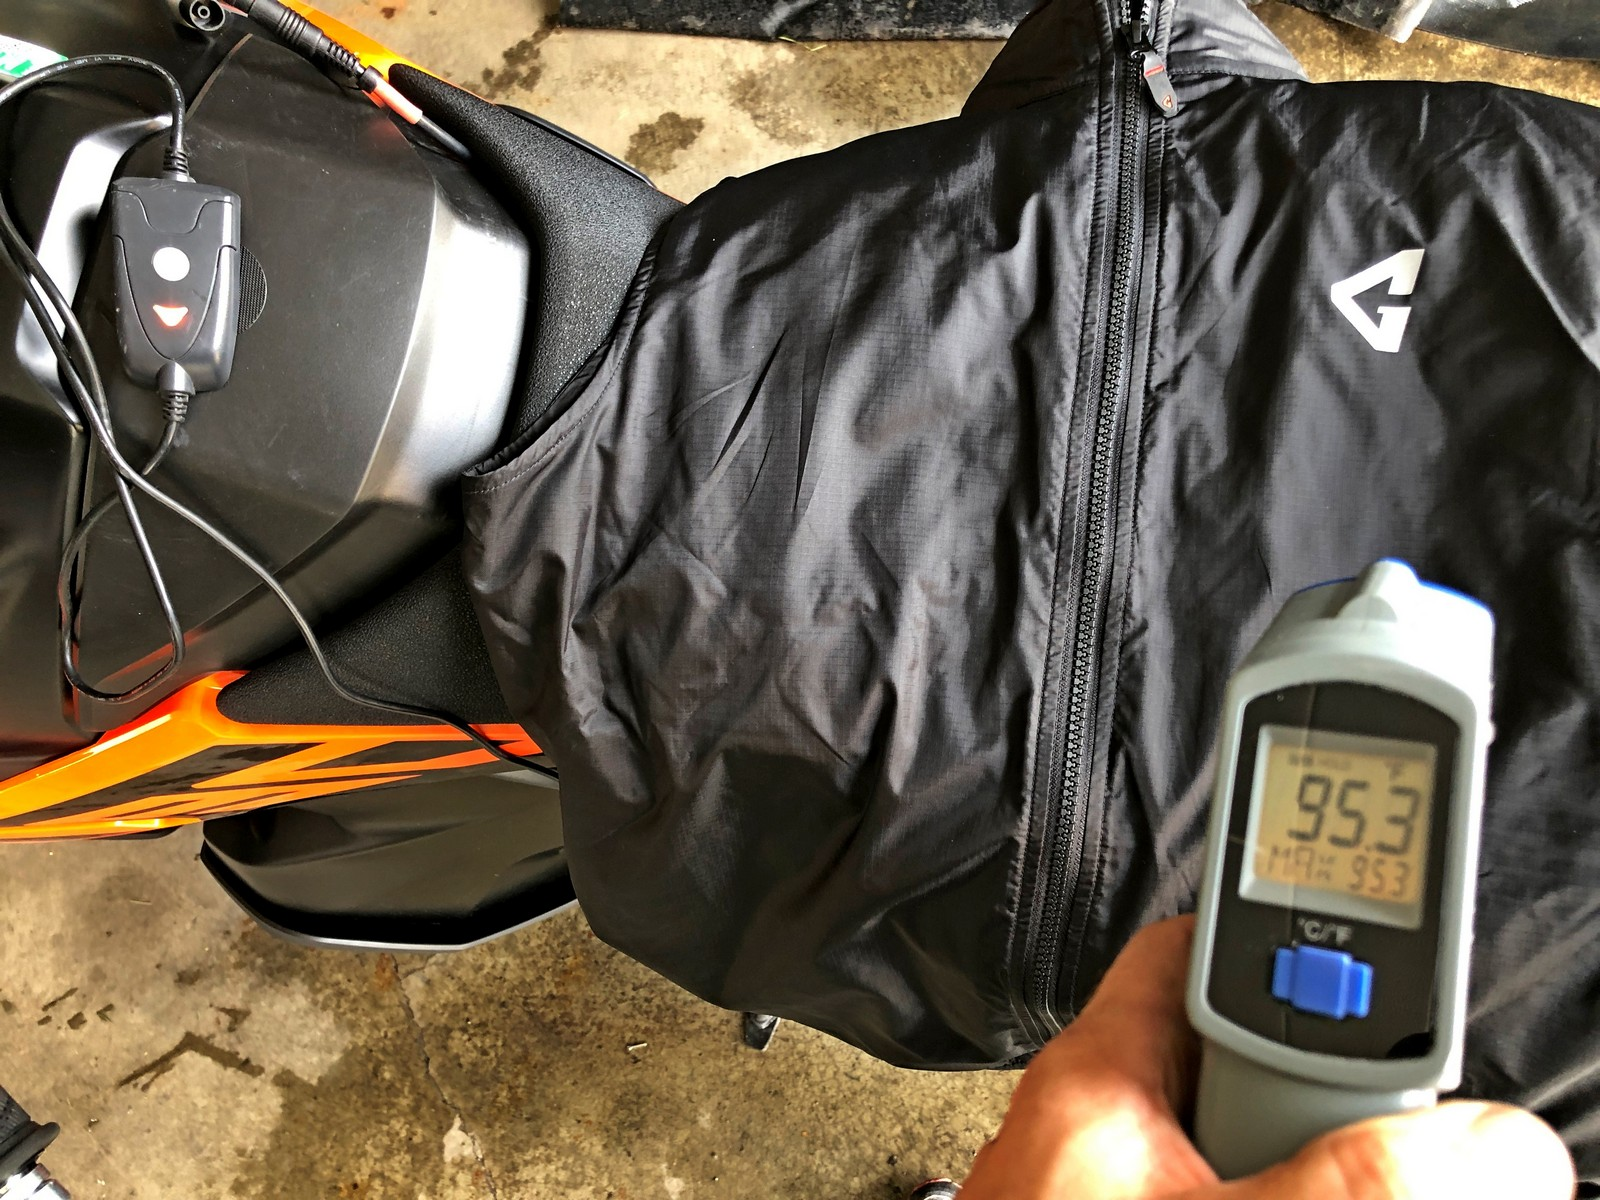 Gerbing Vest heated to 95.3 degrees F